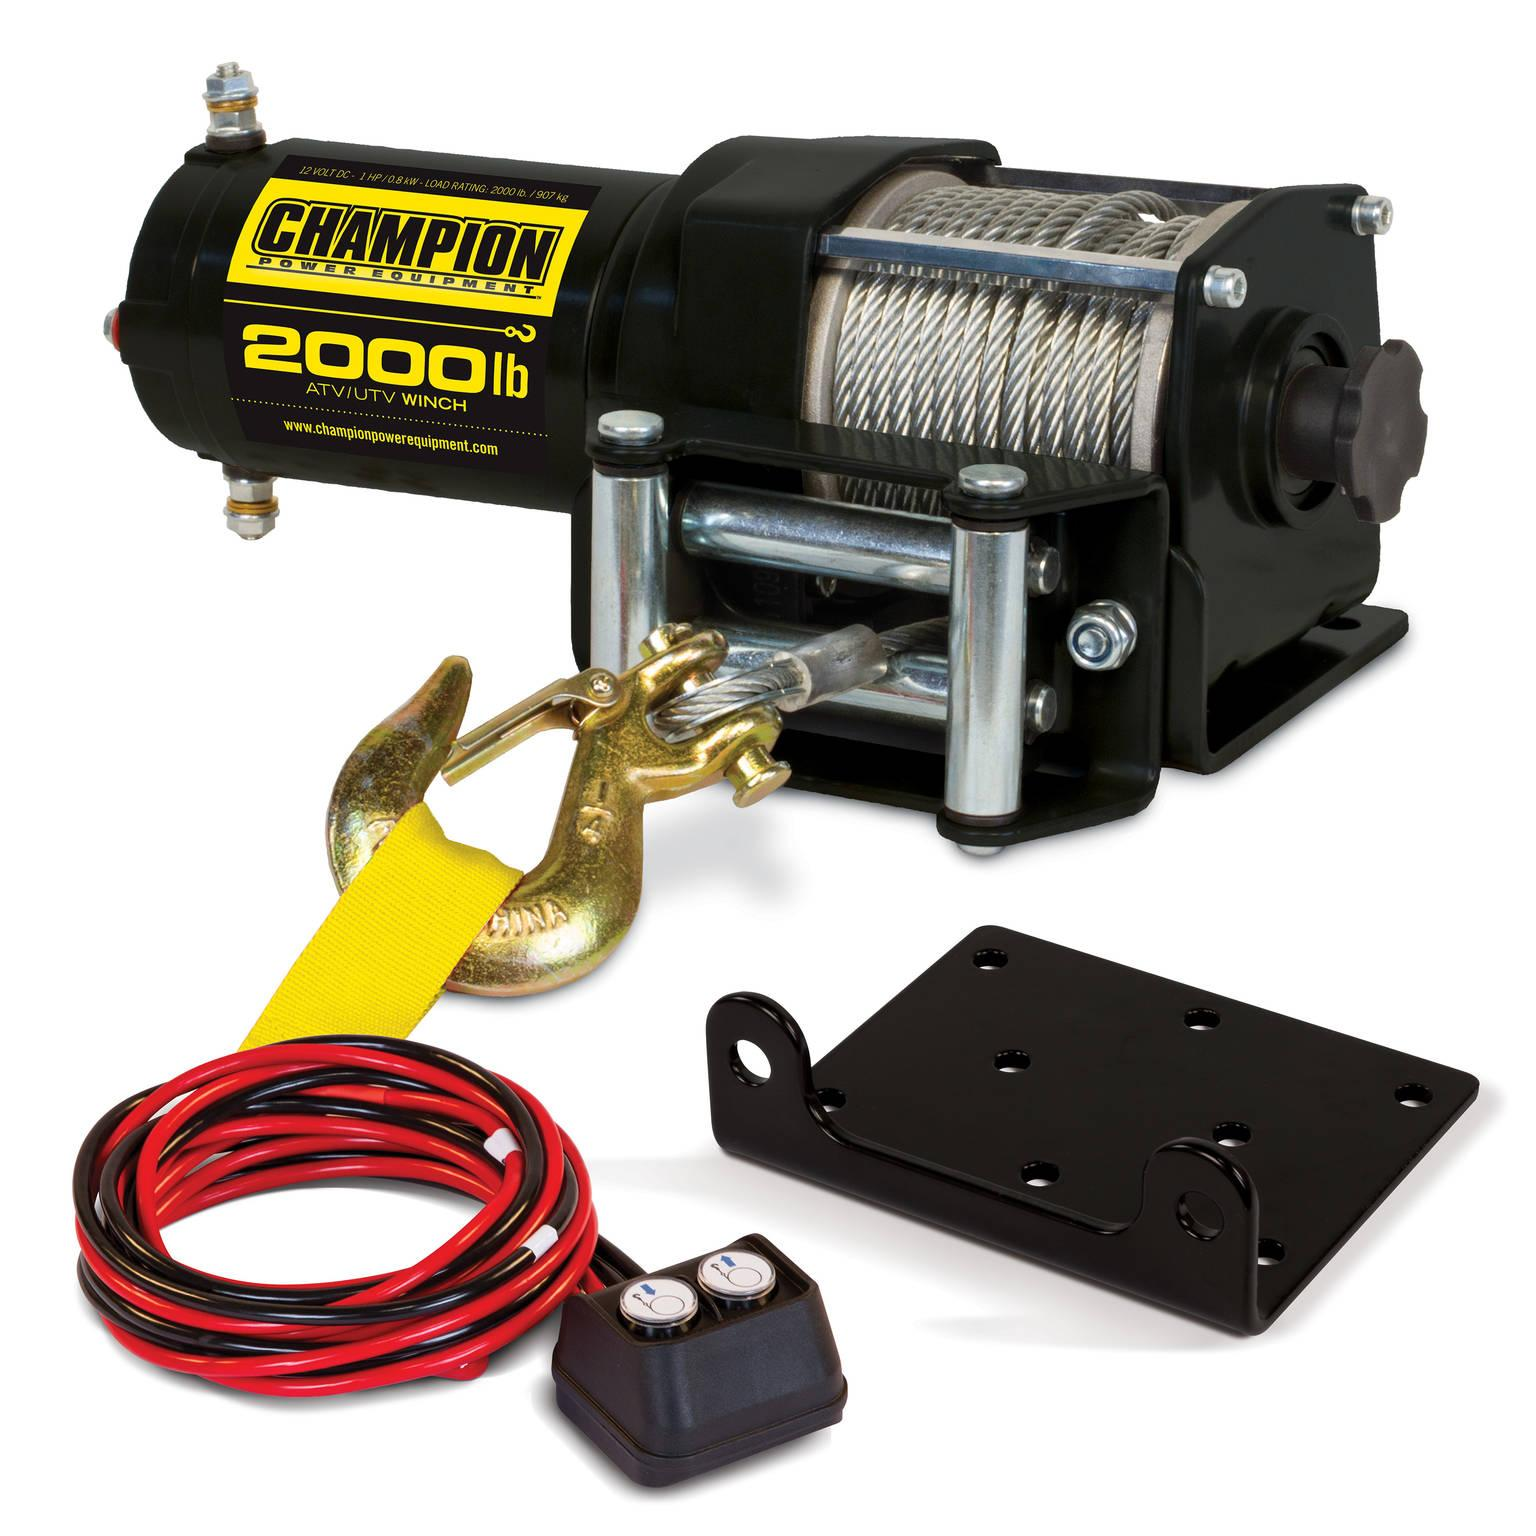 b9b62b73 5304 4992 b148 aa6ea1db19ec._SR150300_ amazon com champion 2000 lb atv utv winch kit automotive champion 3000 lb winch wiring diagram at soozxer.org